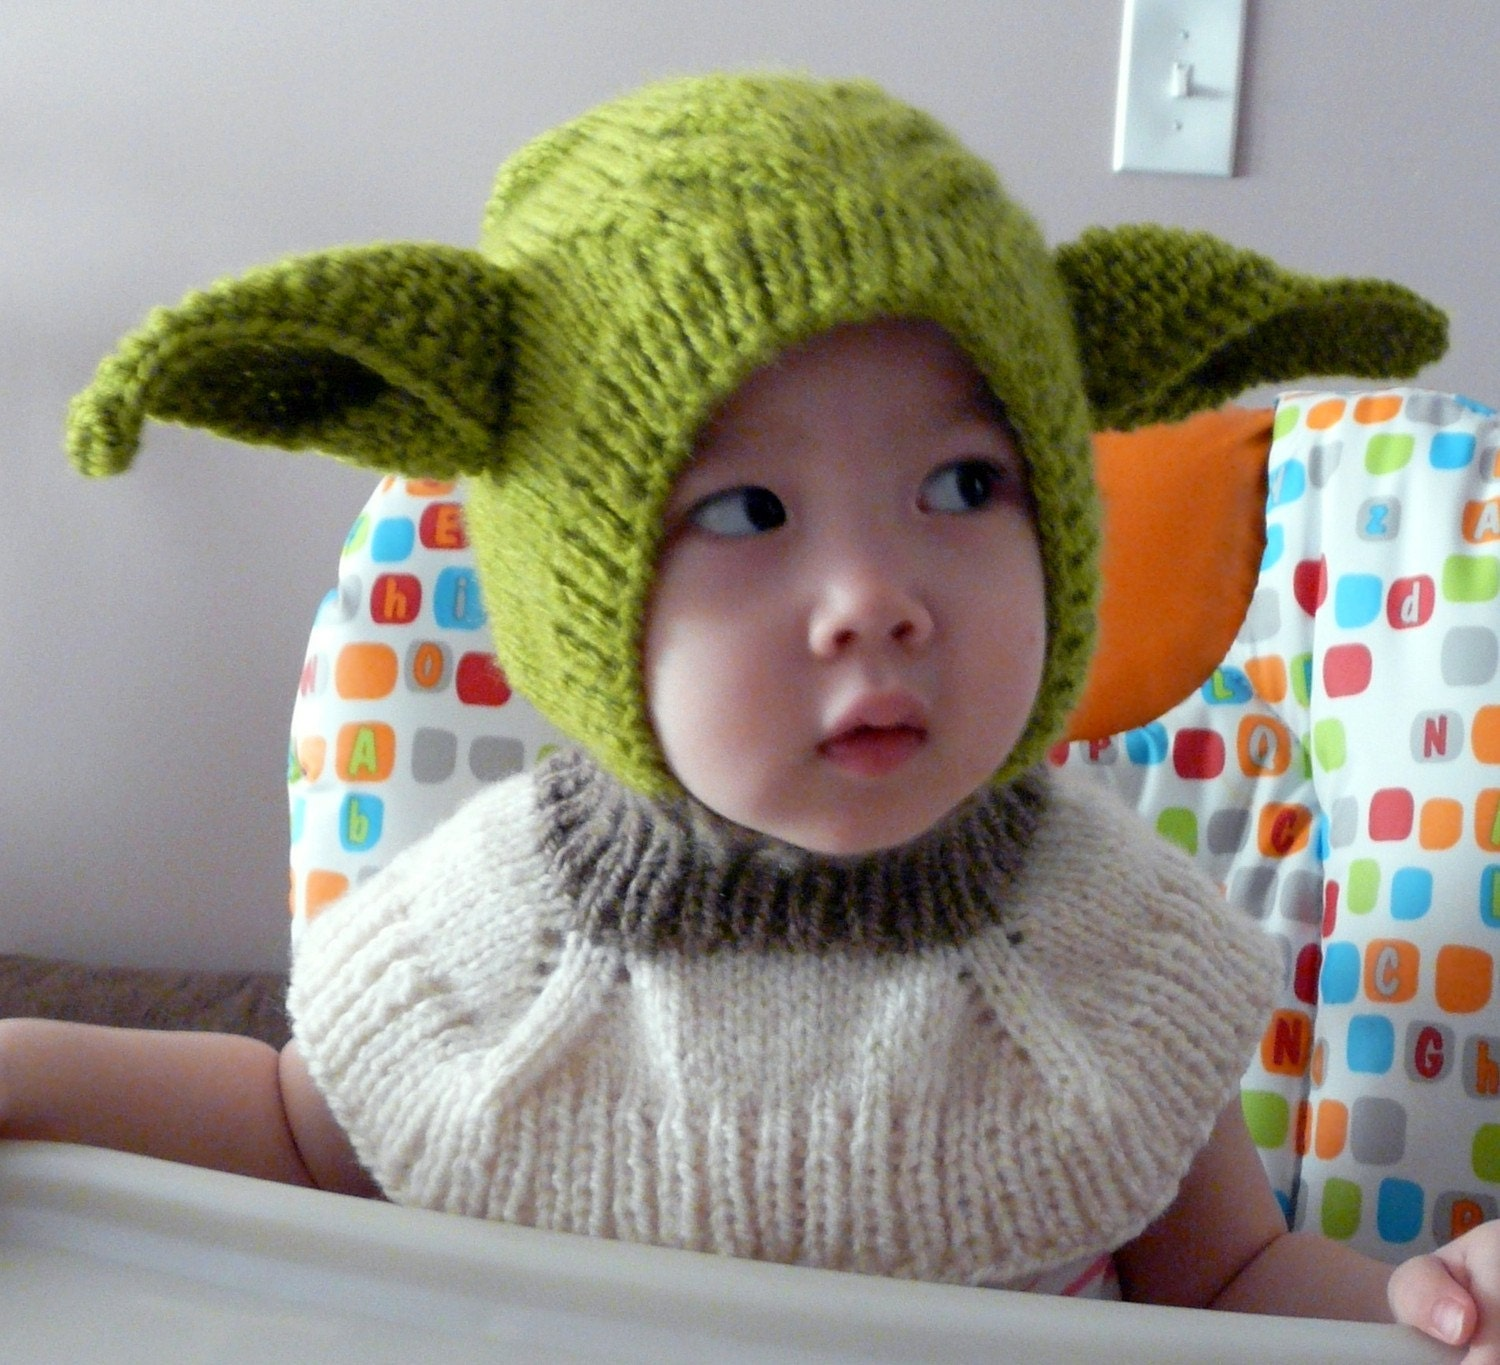 Yoda star wars coverall hat 9-18months